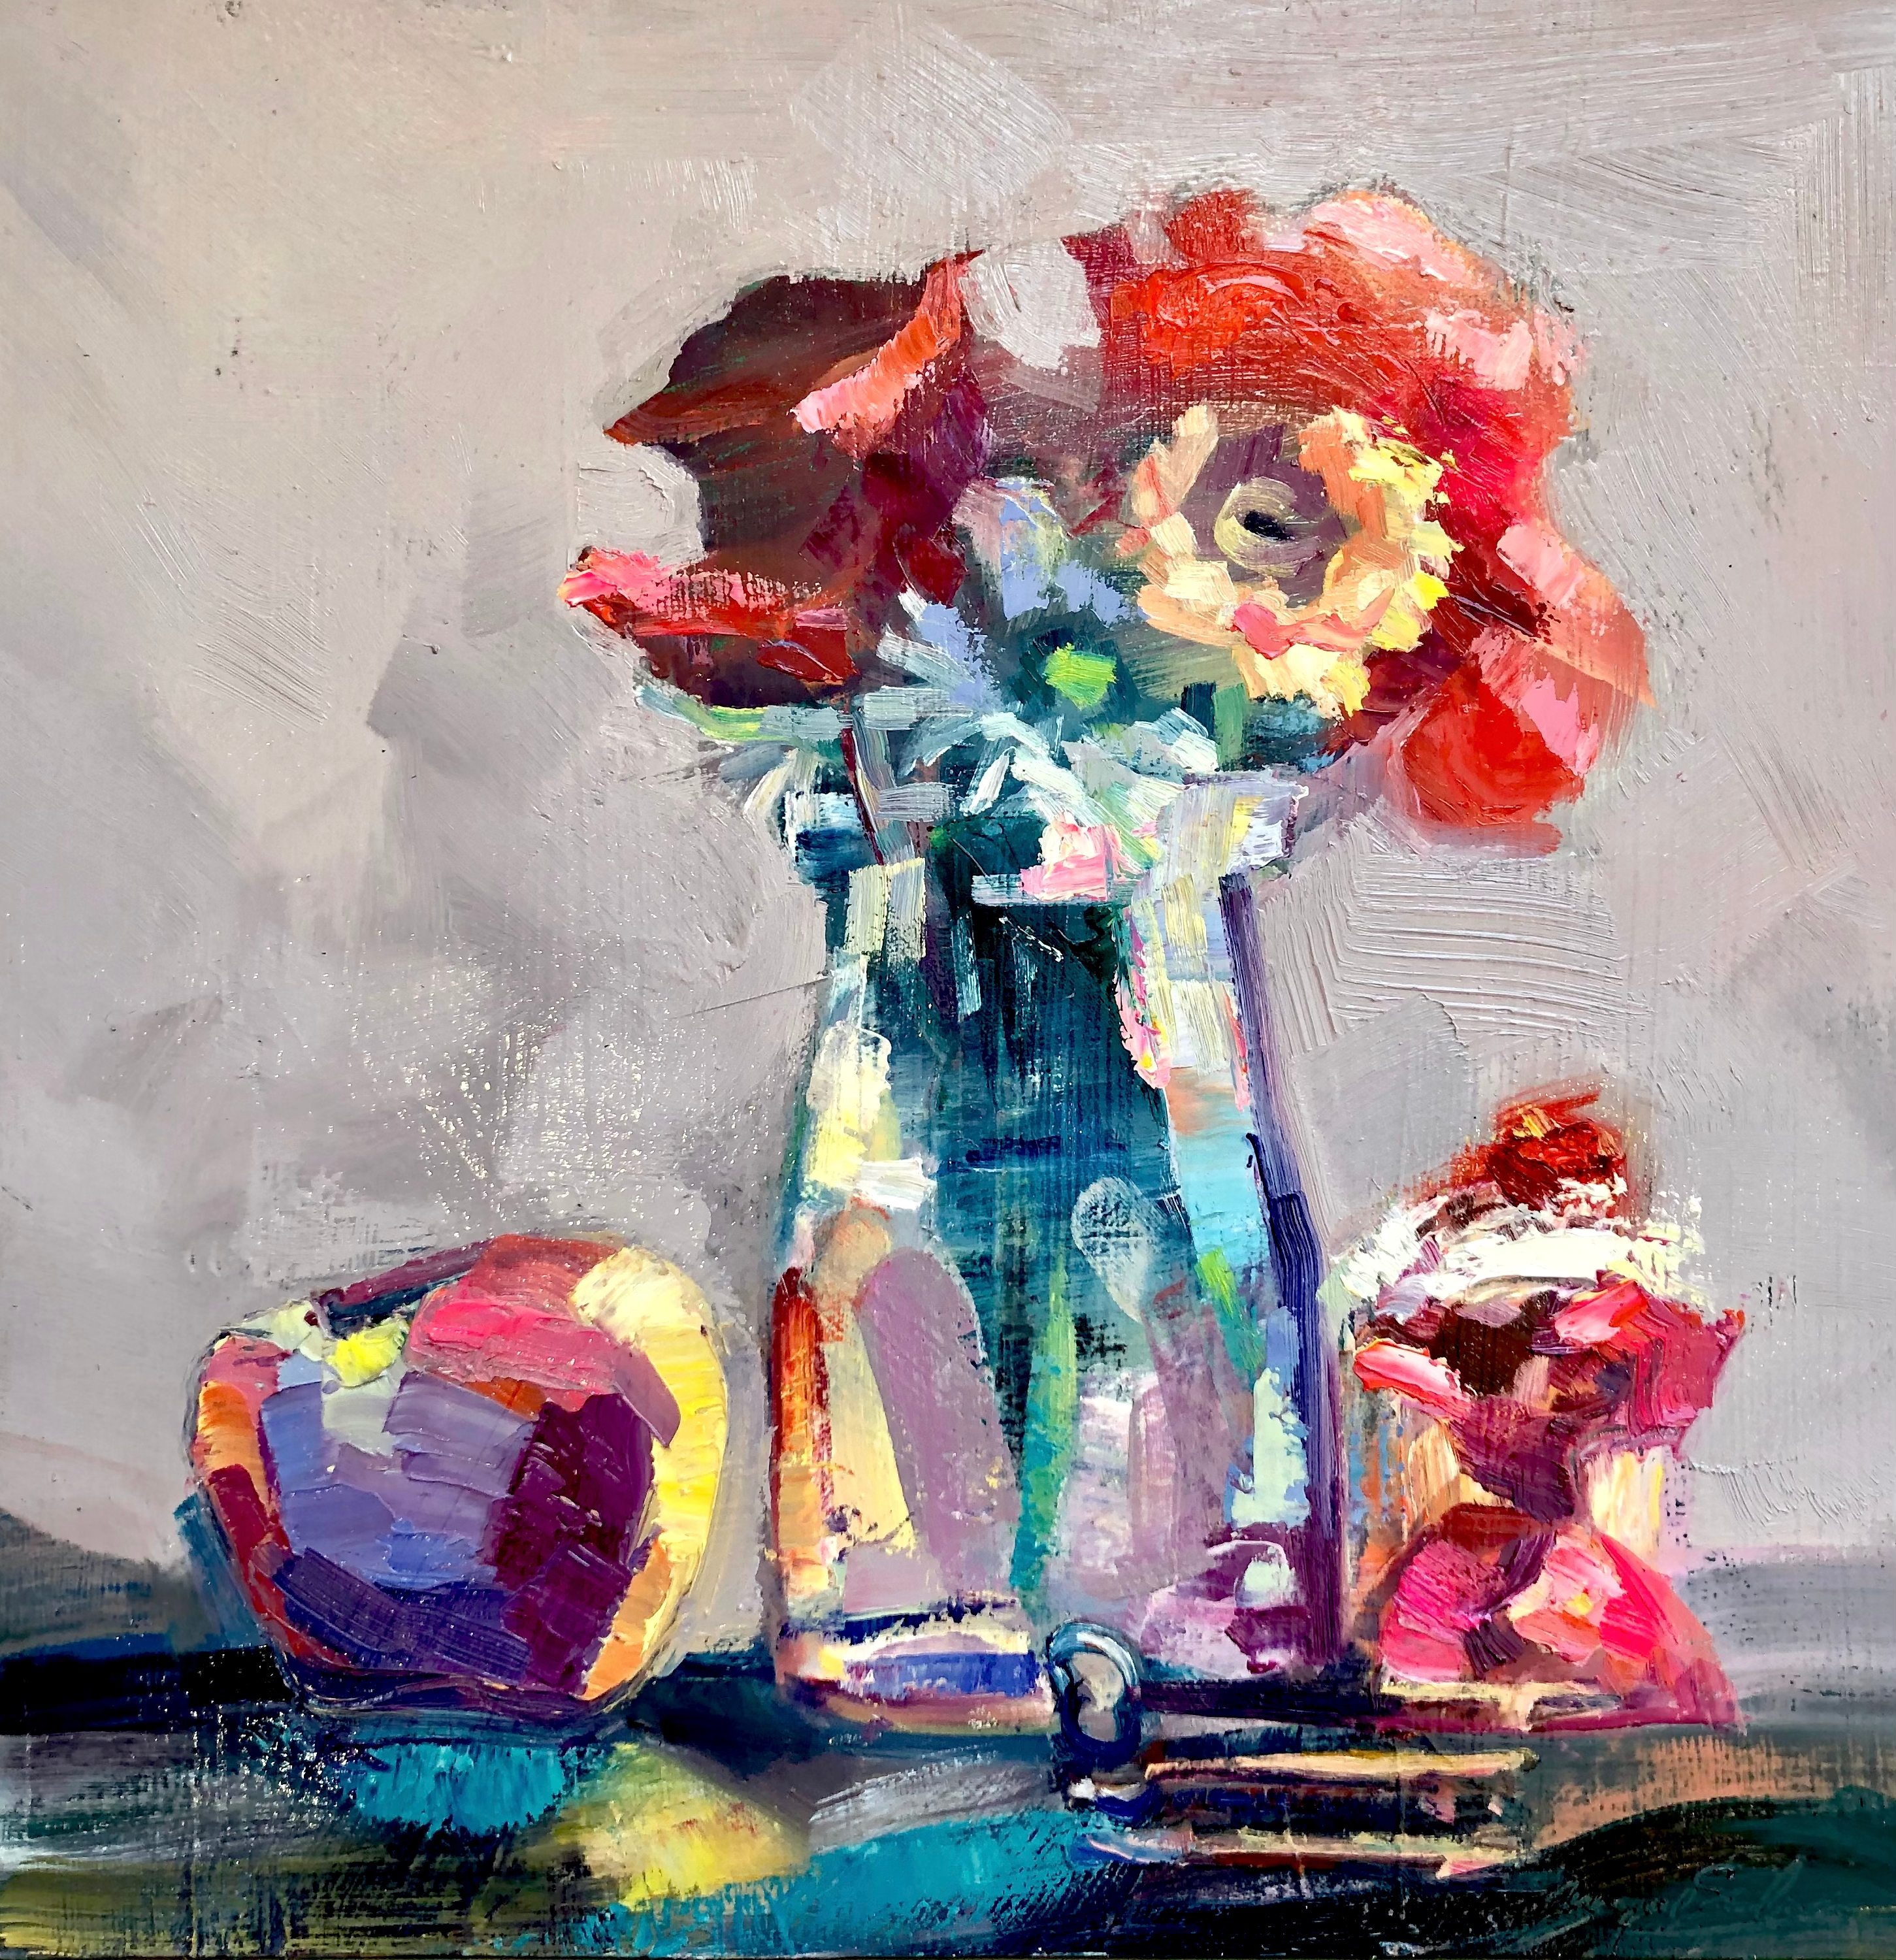 Monique sarkessian still life with roses zinnias and apples of gold oil on wood 12x12 22 500 copy bxhbqp